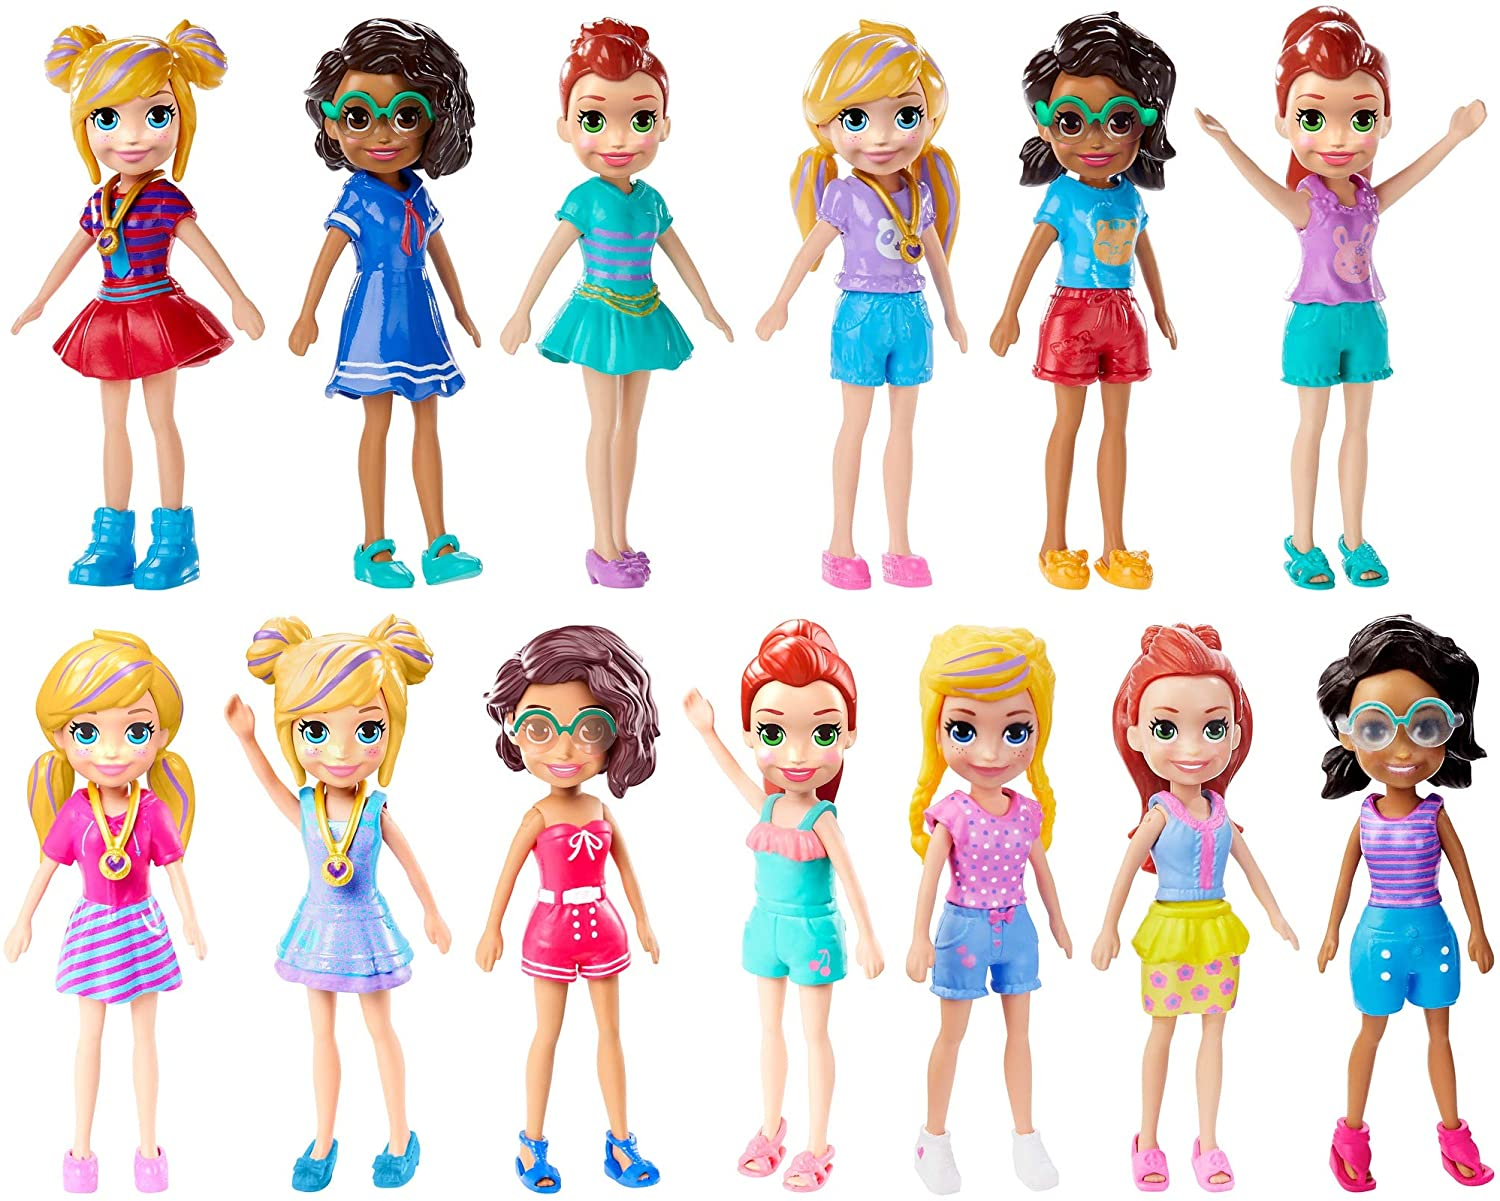 Boneca Polly Pocket Sort.FWY19 Mattel